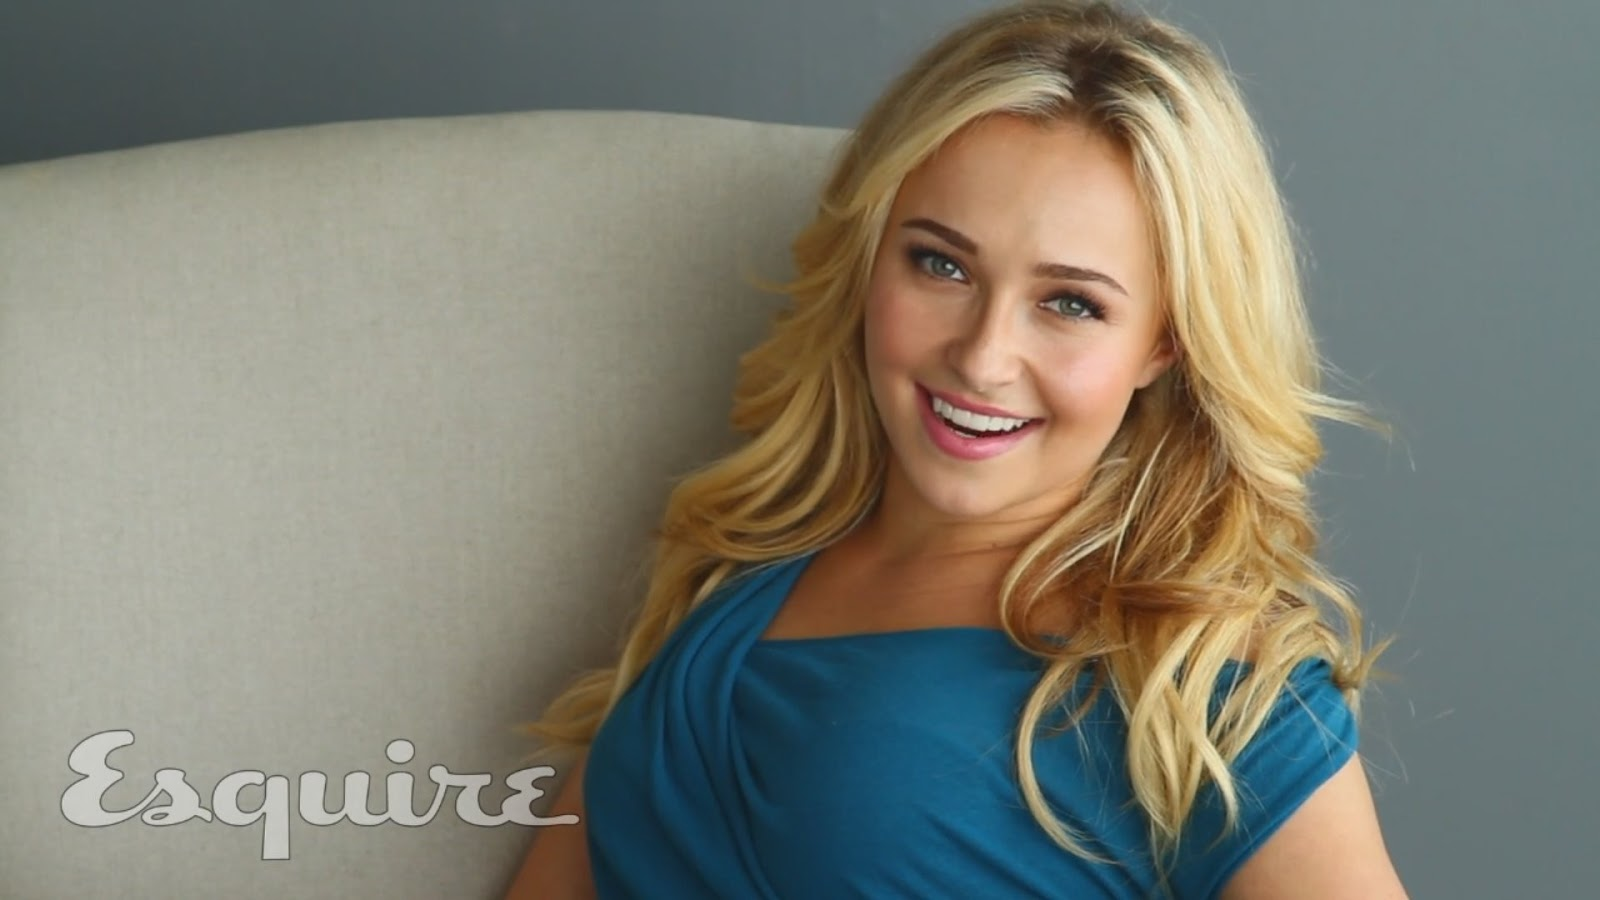 and select    save image as       Posted in Hayden Panettiere